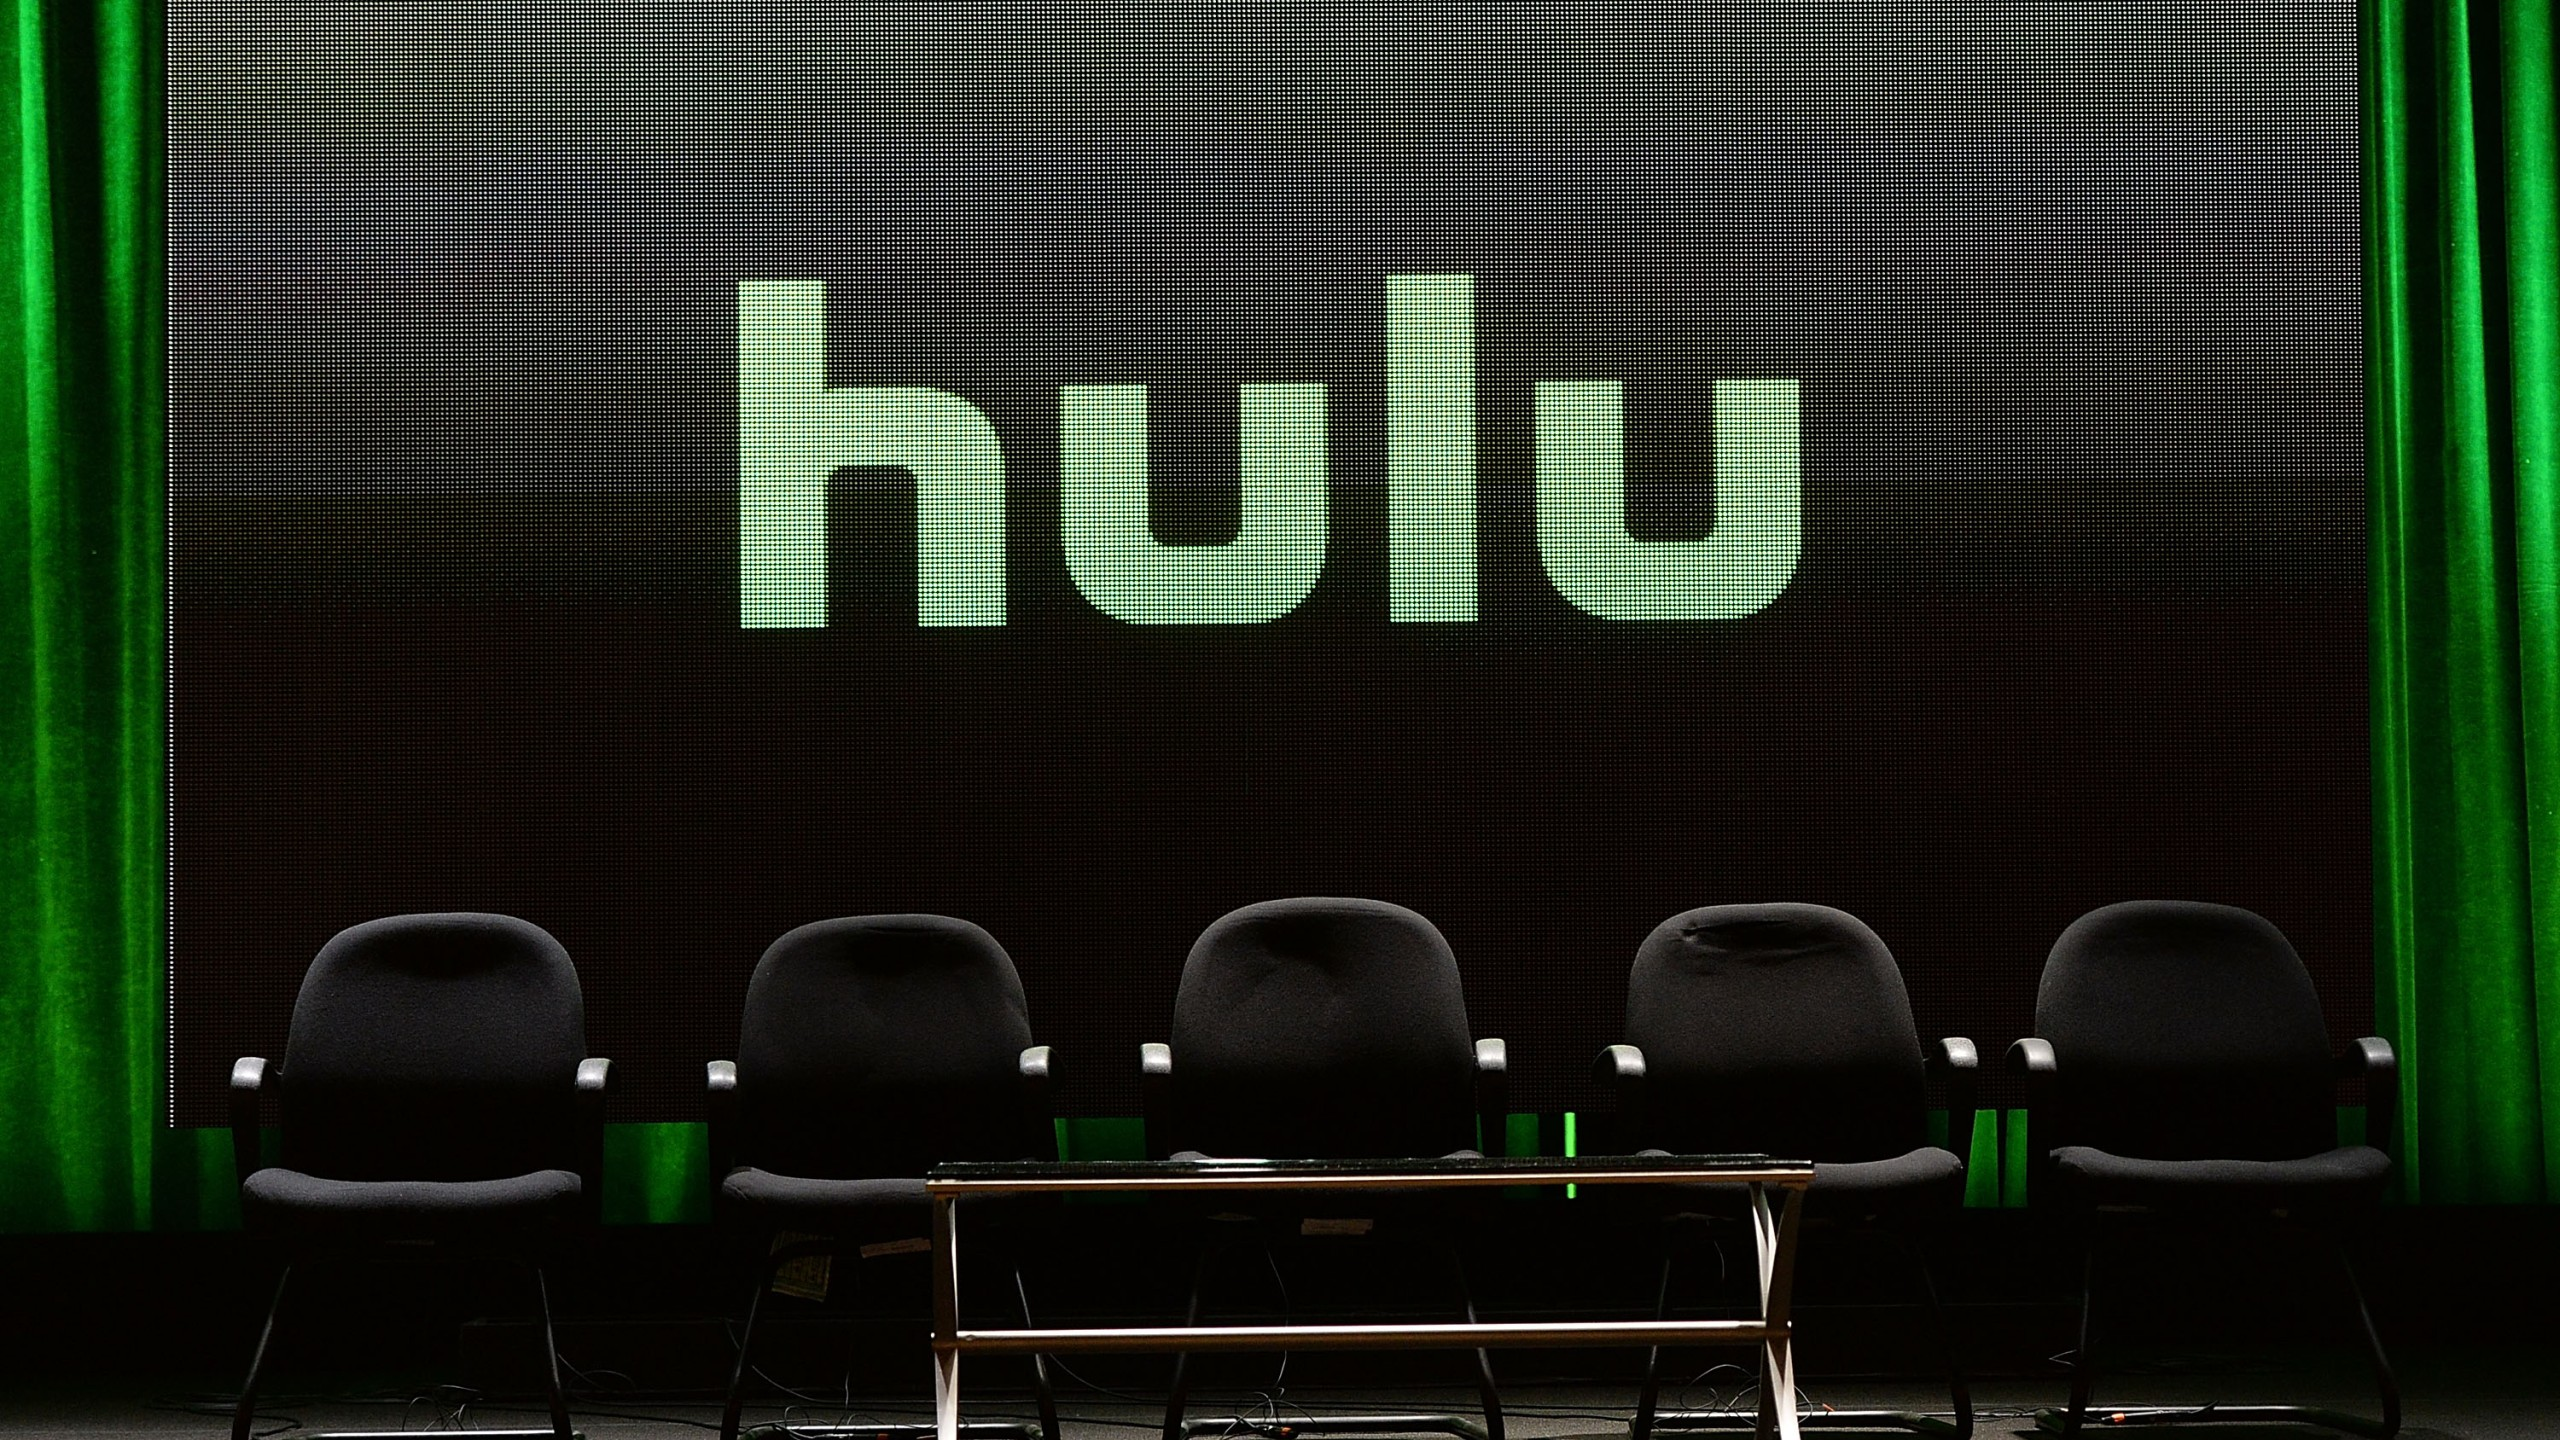 The Hulu 2013 Summer TCA Tour takes place at The Beverly Hilton Hotel on July 31, 2013. (Credit: Michael Kovac/Getty Images for Hulu)